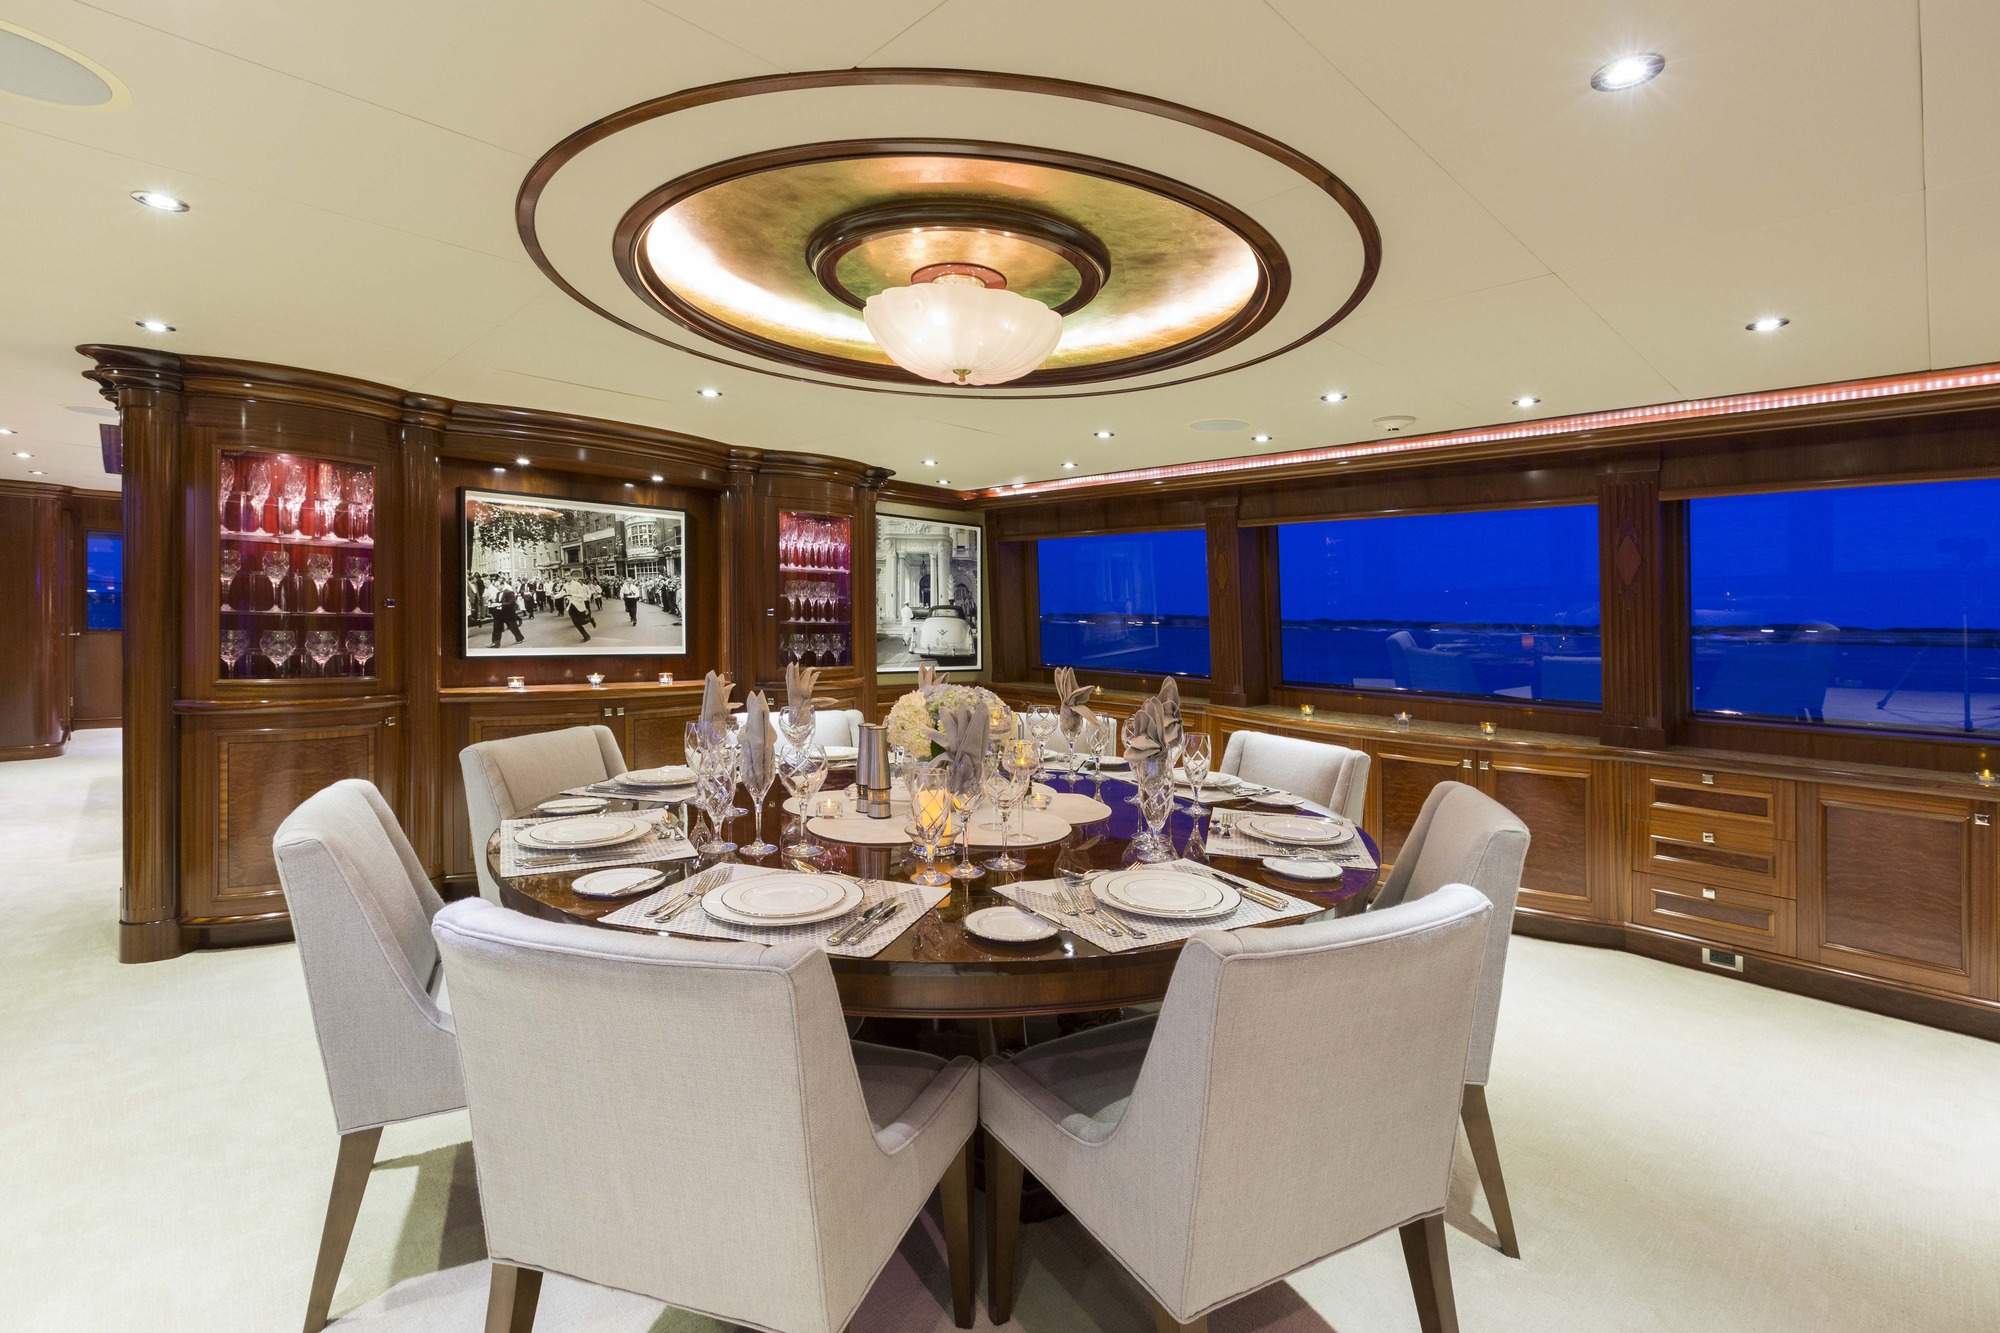 MY FAR FROM IT - Formal dining